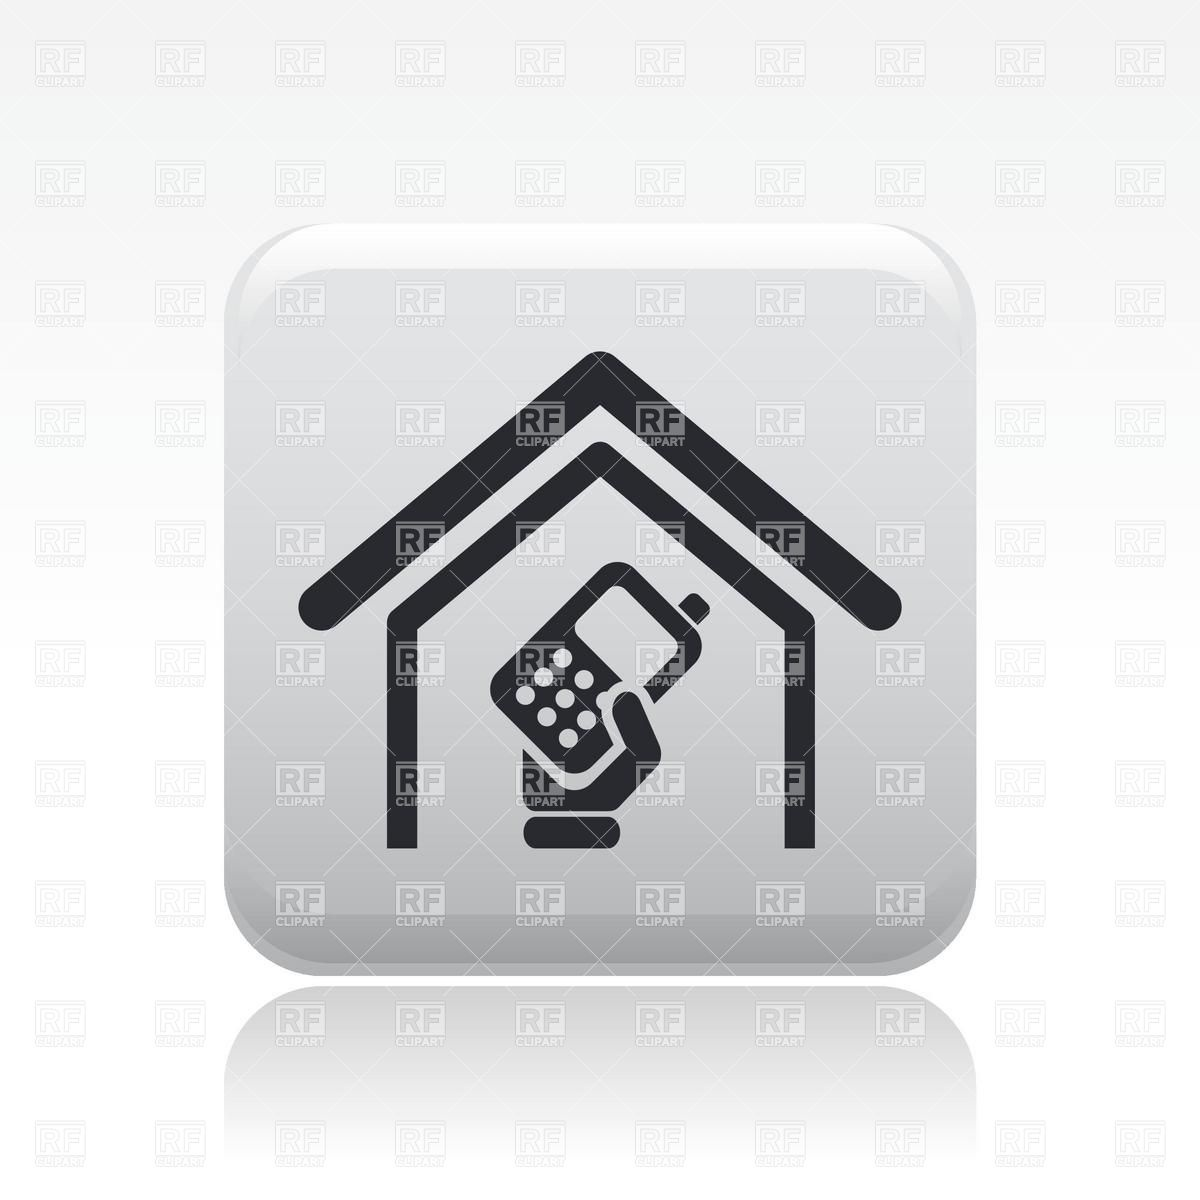 1200x1200 Hand With Handheld Transceiver Or Mobile Phone Icon Vector Image